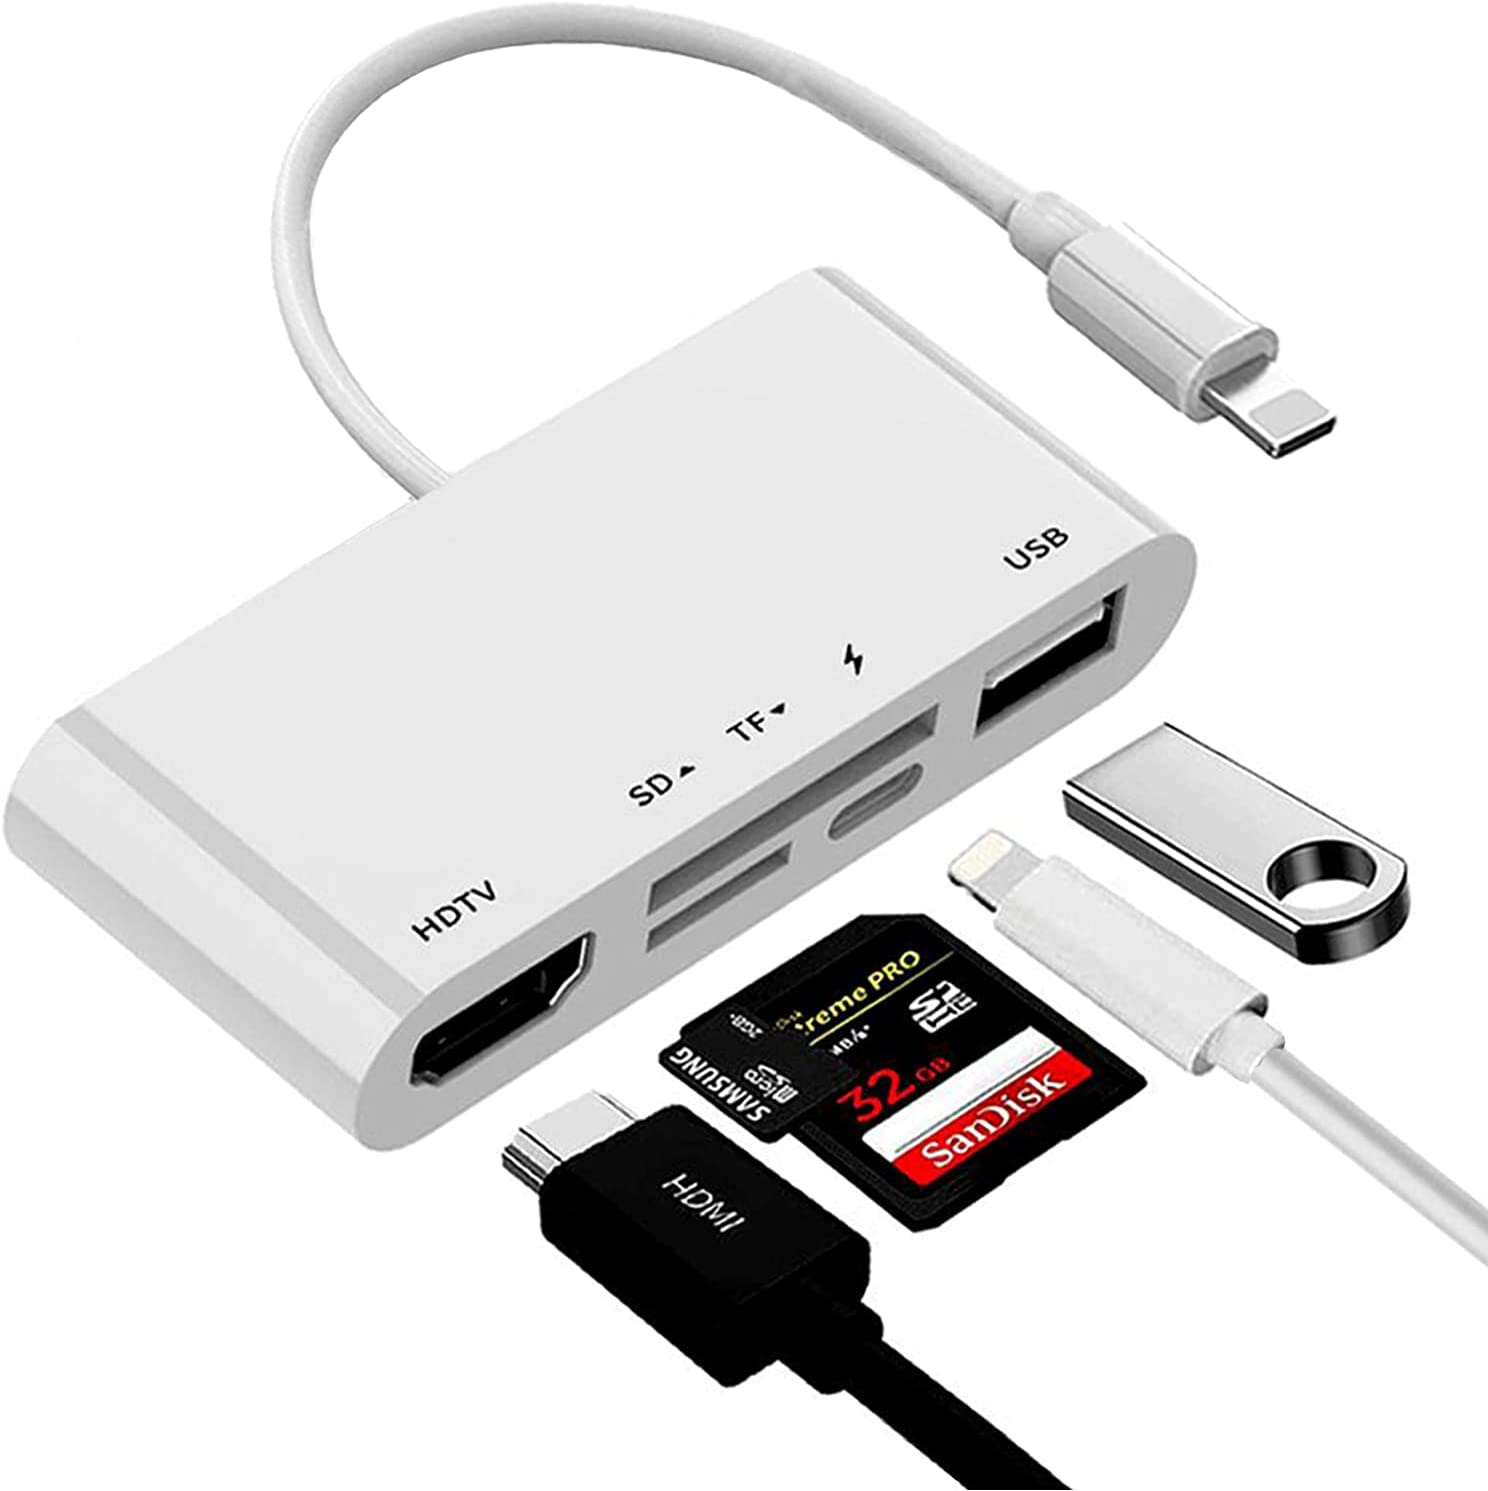 Lightning to HDMI 1080P Digital AV Adapter,Rosyclo 5 in 1 SD&TF Card Reader USB Camera OTG Adapter and Charging Port Compatible iPhone/iPad/iPod Projector/Monitor and More USB Device